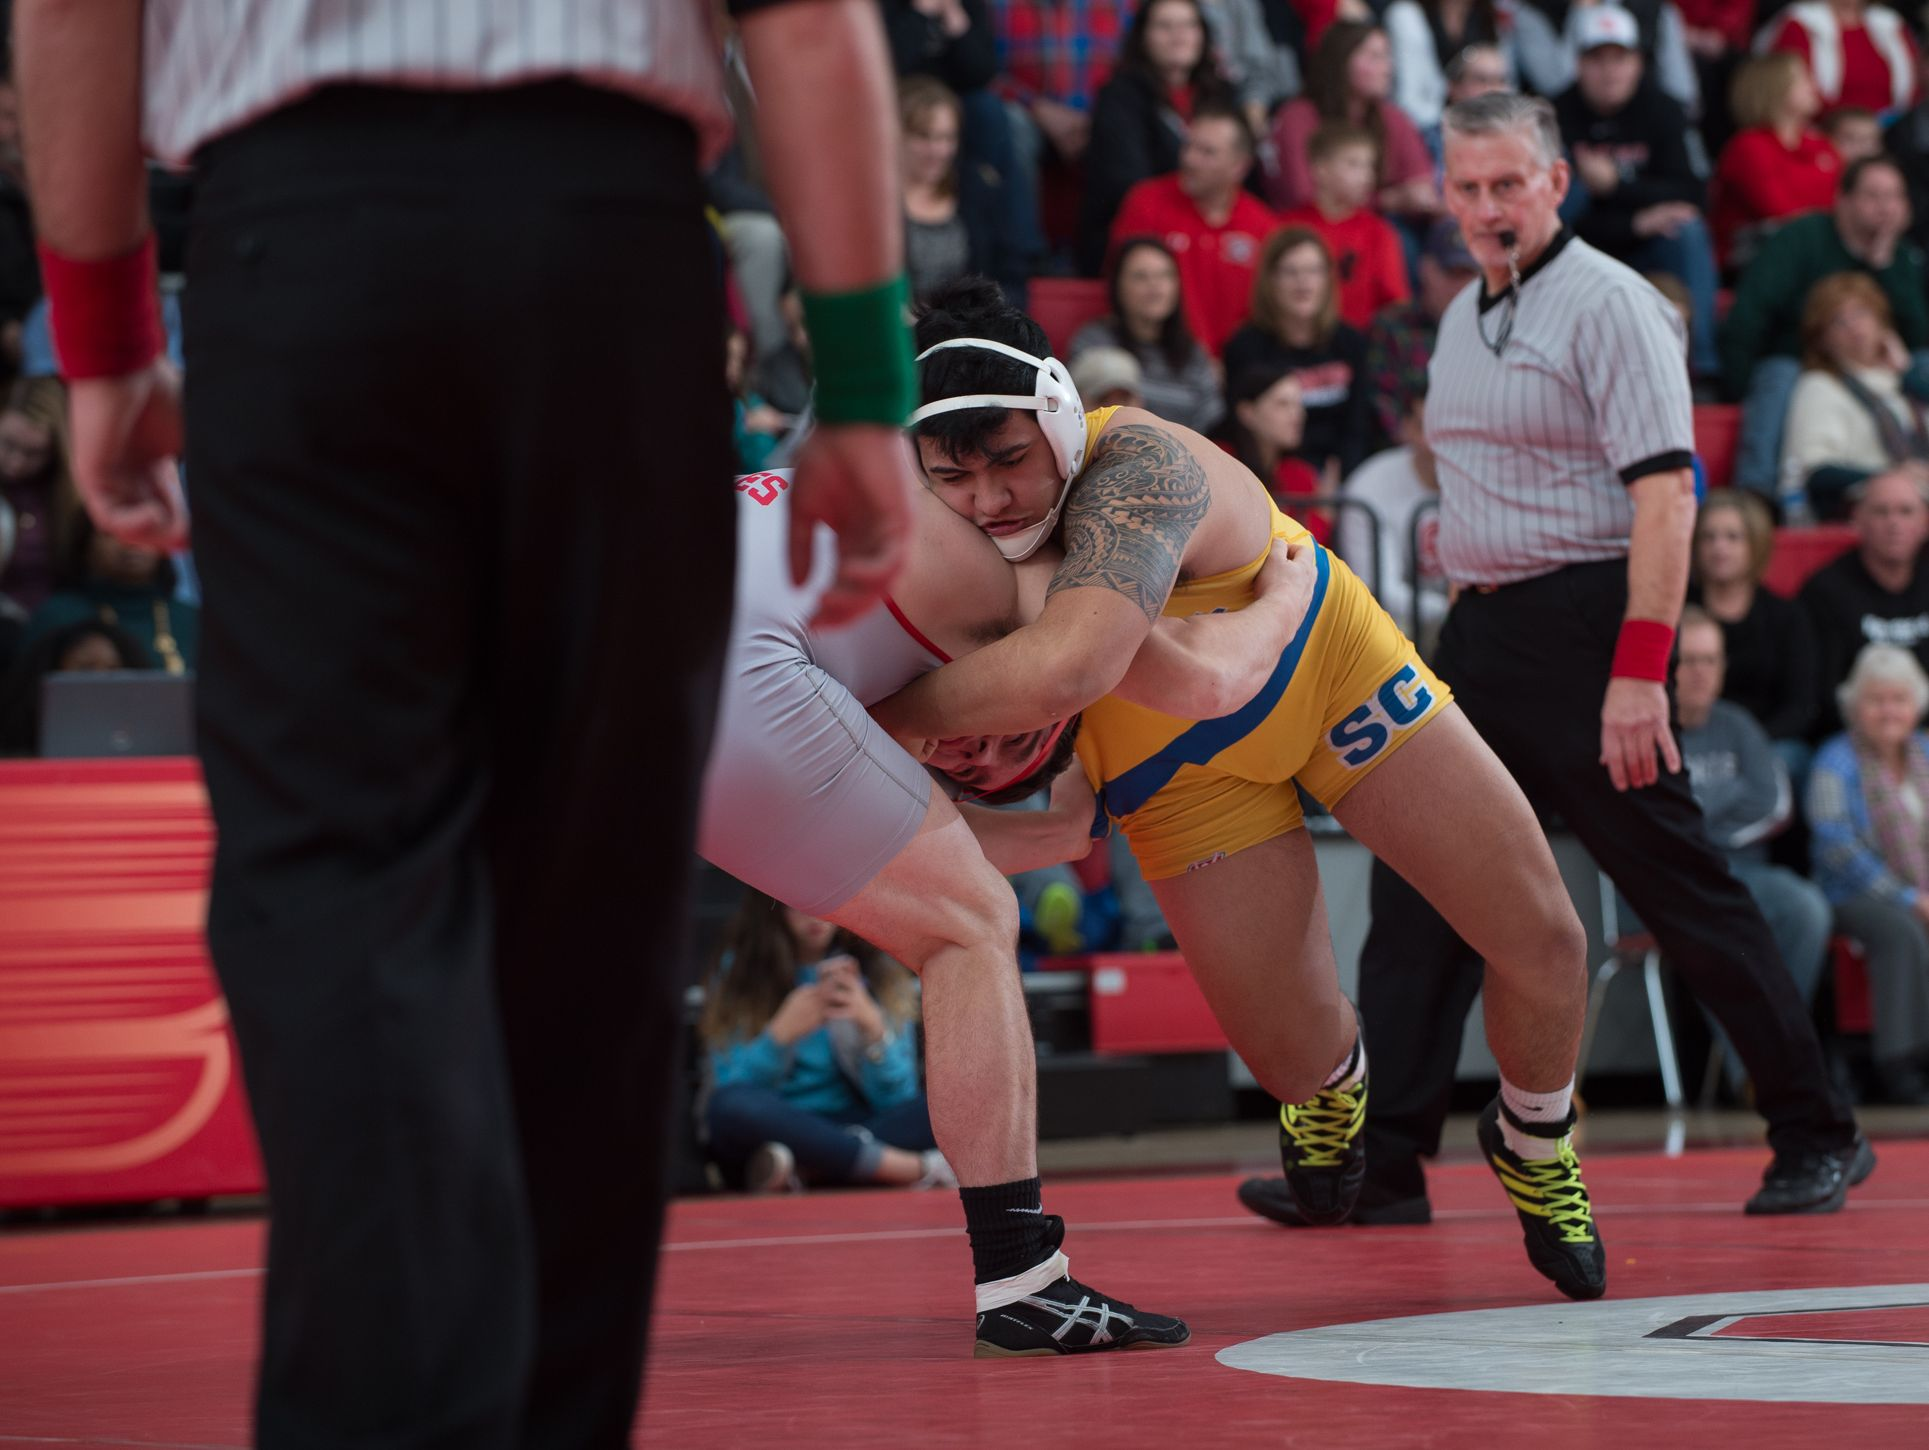 Sussex Central's John Morris, right, and Smyrna's Brent Young wrestle in the 220 pound match at Smyrna High School. Smyrna defeated Sussex Central 39-27.